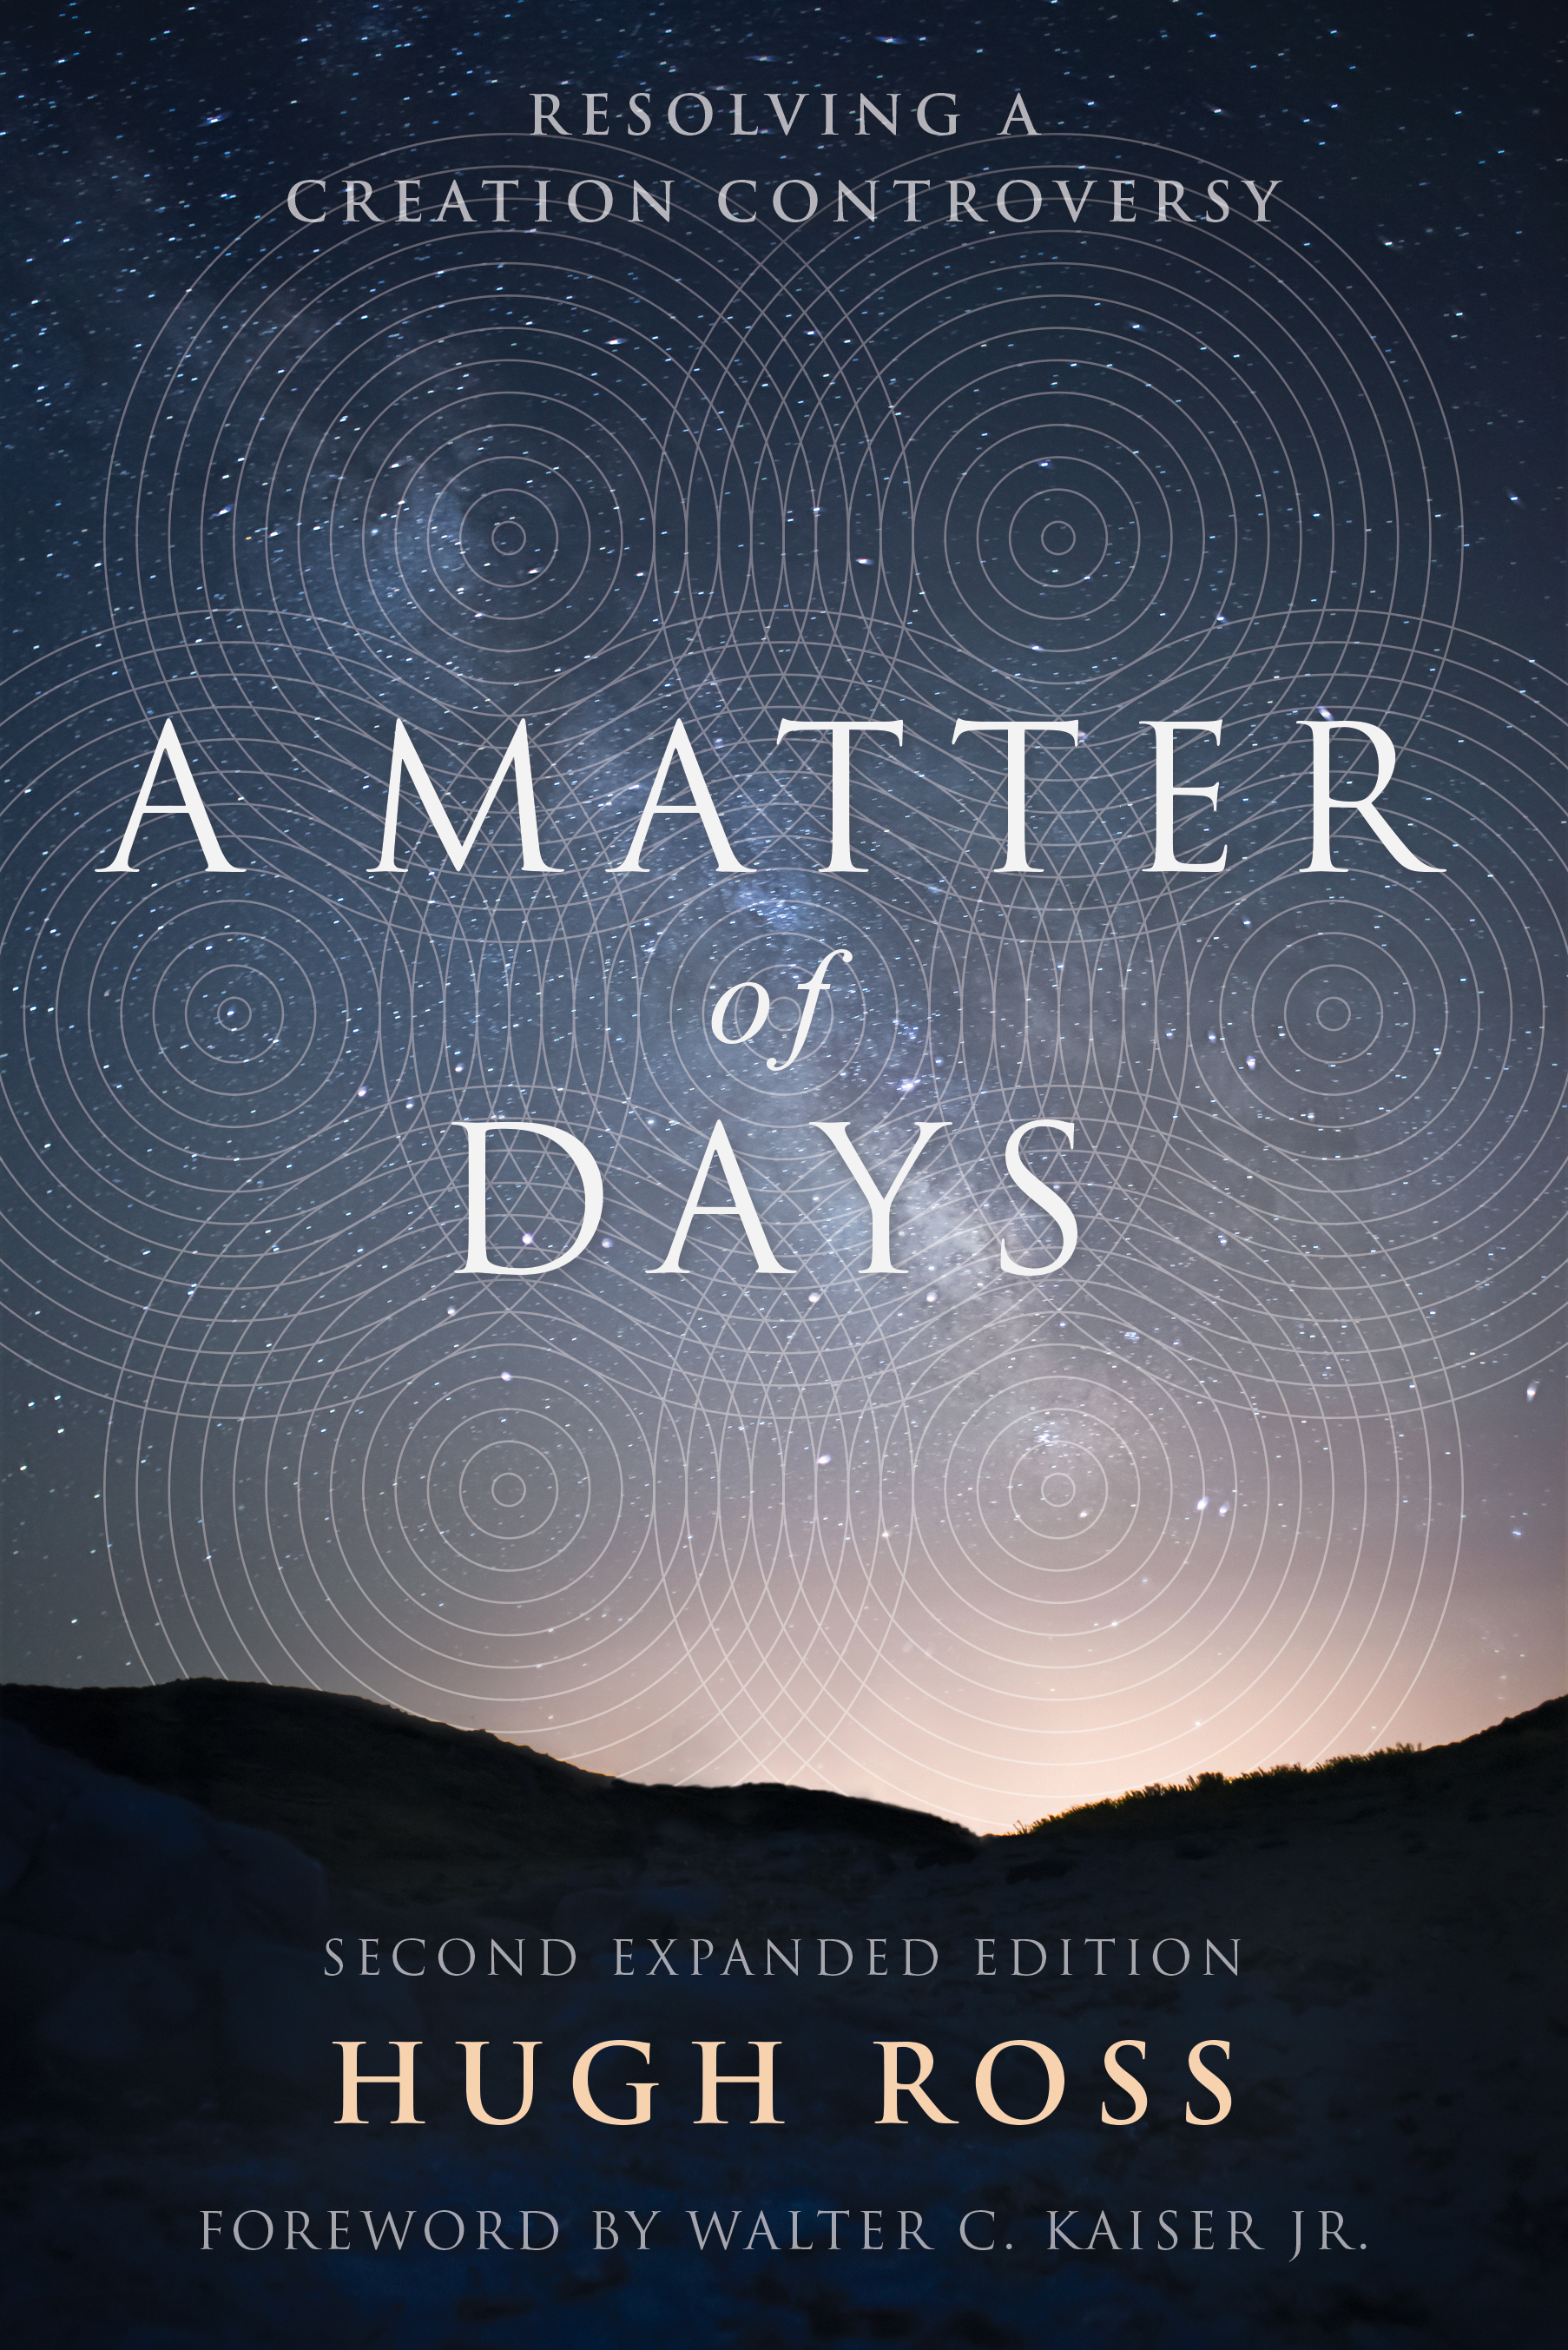 A Matter of Days Image